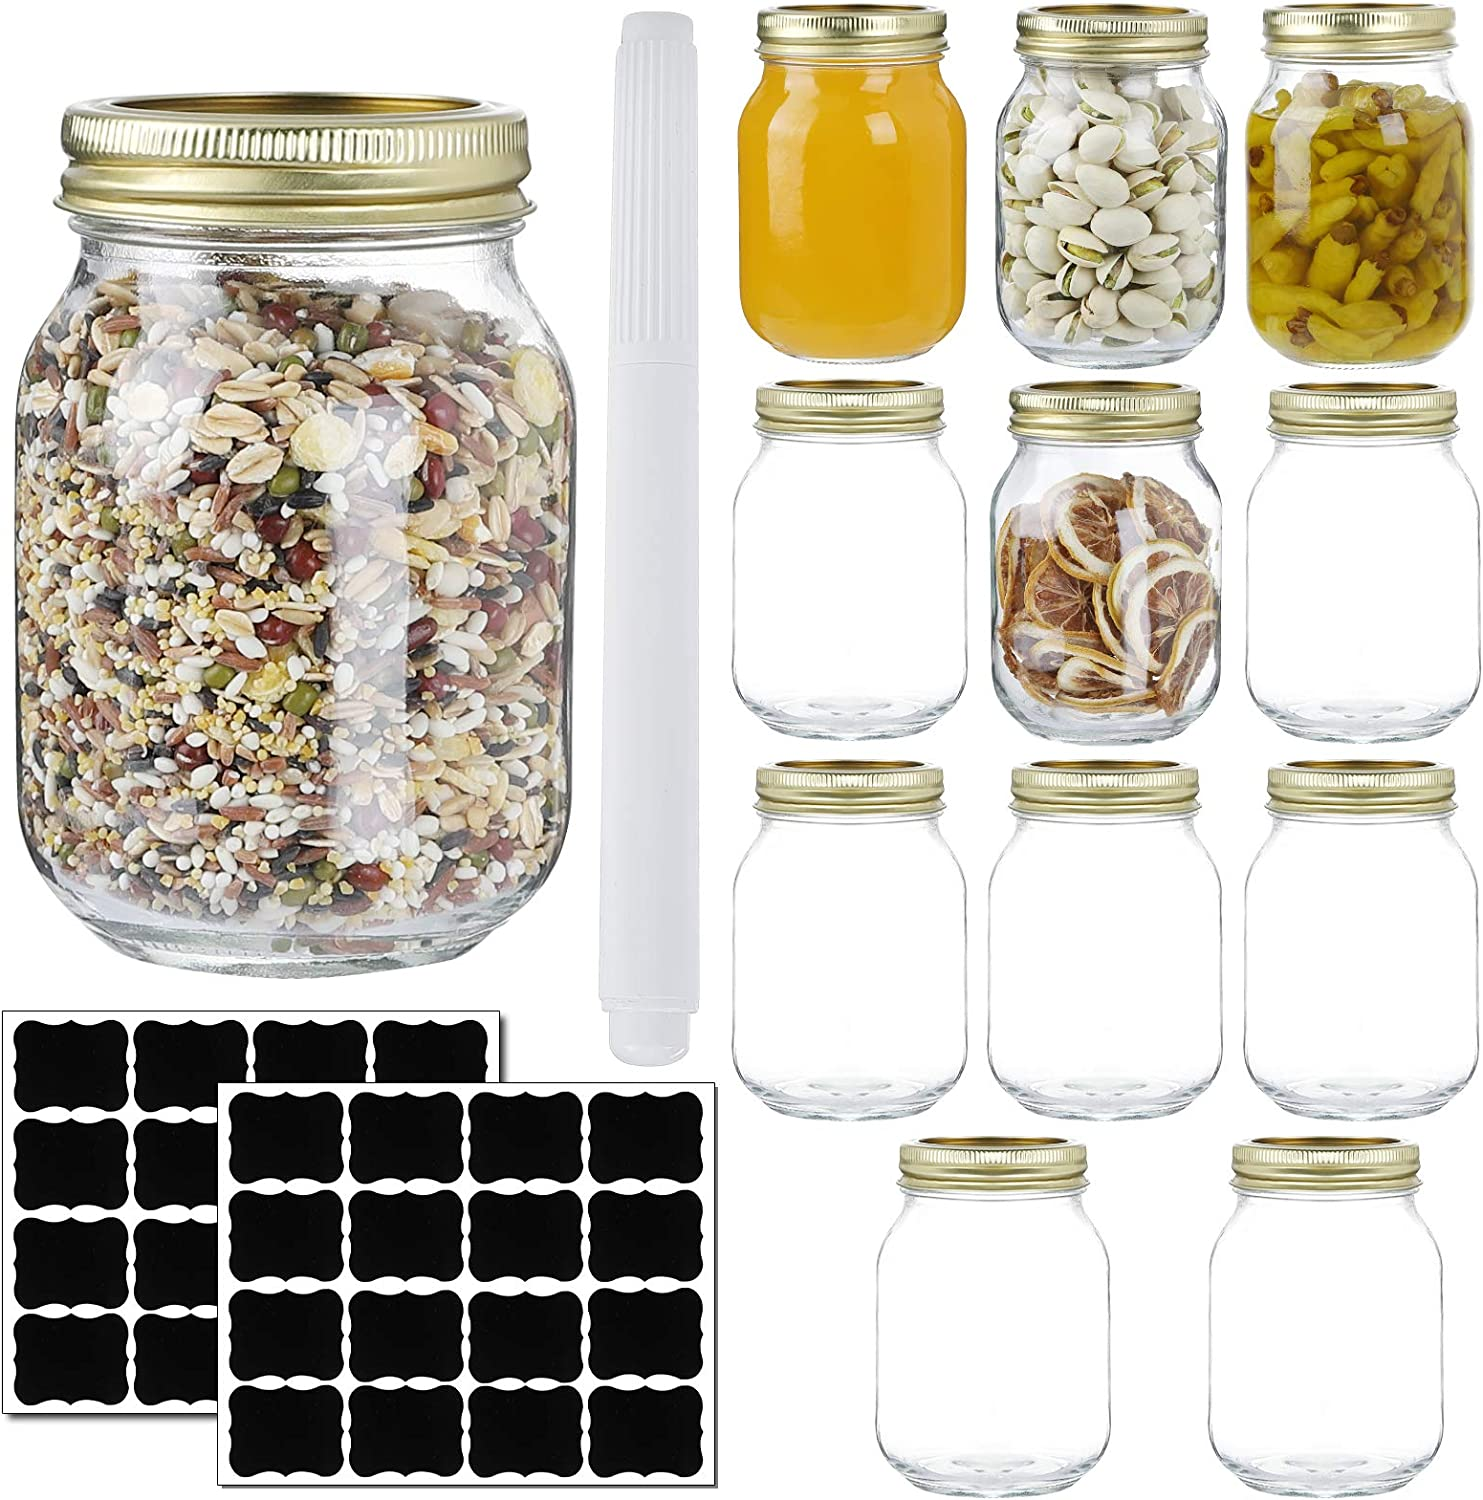 12 Pack 16oz Mason Jars,Glass Jars With Regular Lids and Bands,Canning Jars For Pickles And Kitchen Storage,Wide Mouth Spice Jars With Gold Lids For Honey,Caviar,Herb,Jelly,Jams-20 Black Labels,1 Chalk Marker Included